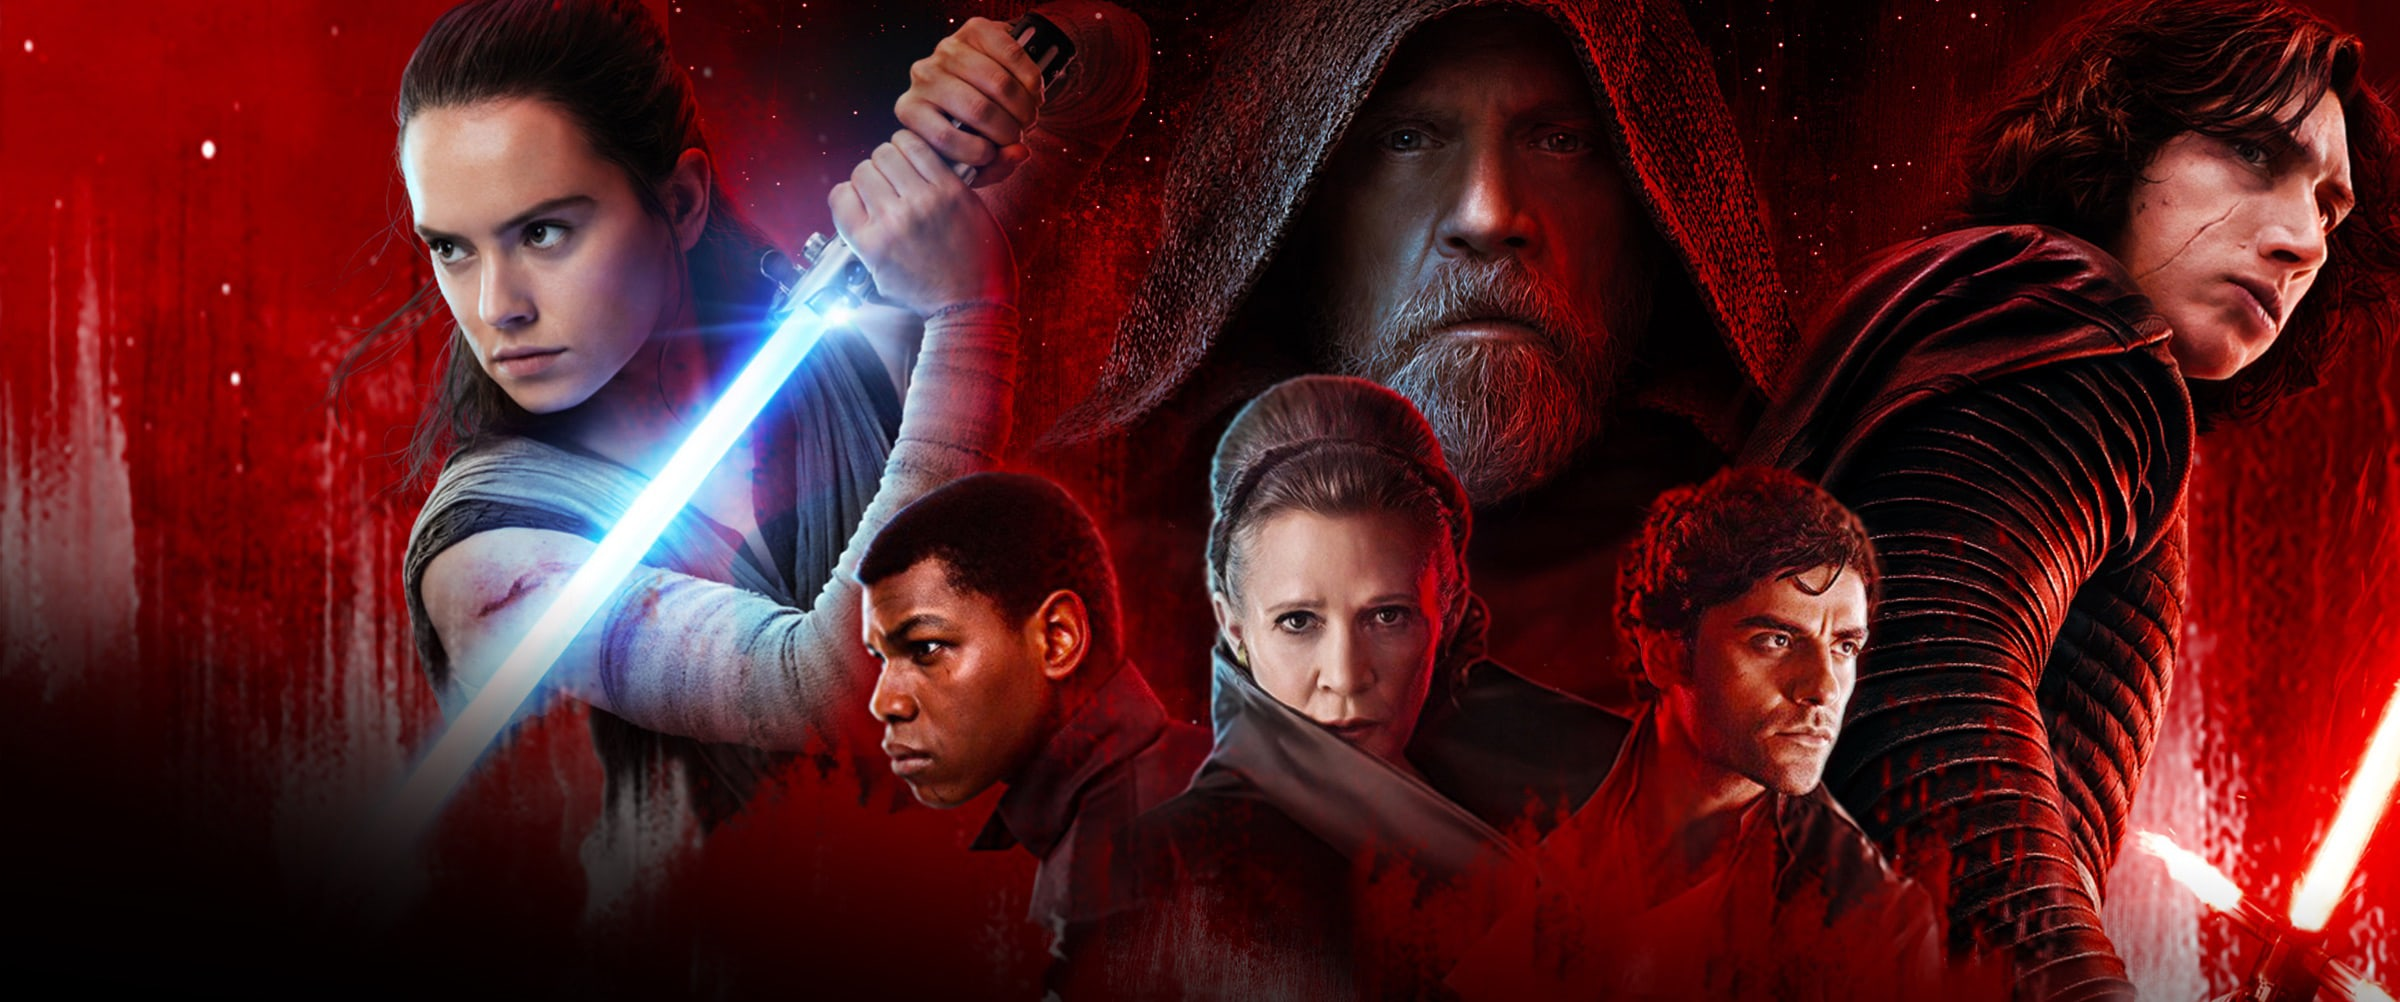 IL - Star Wars The Last Jedi - Flex-Content Hero Homepage - Video